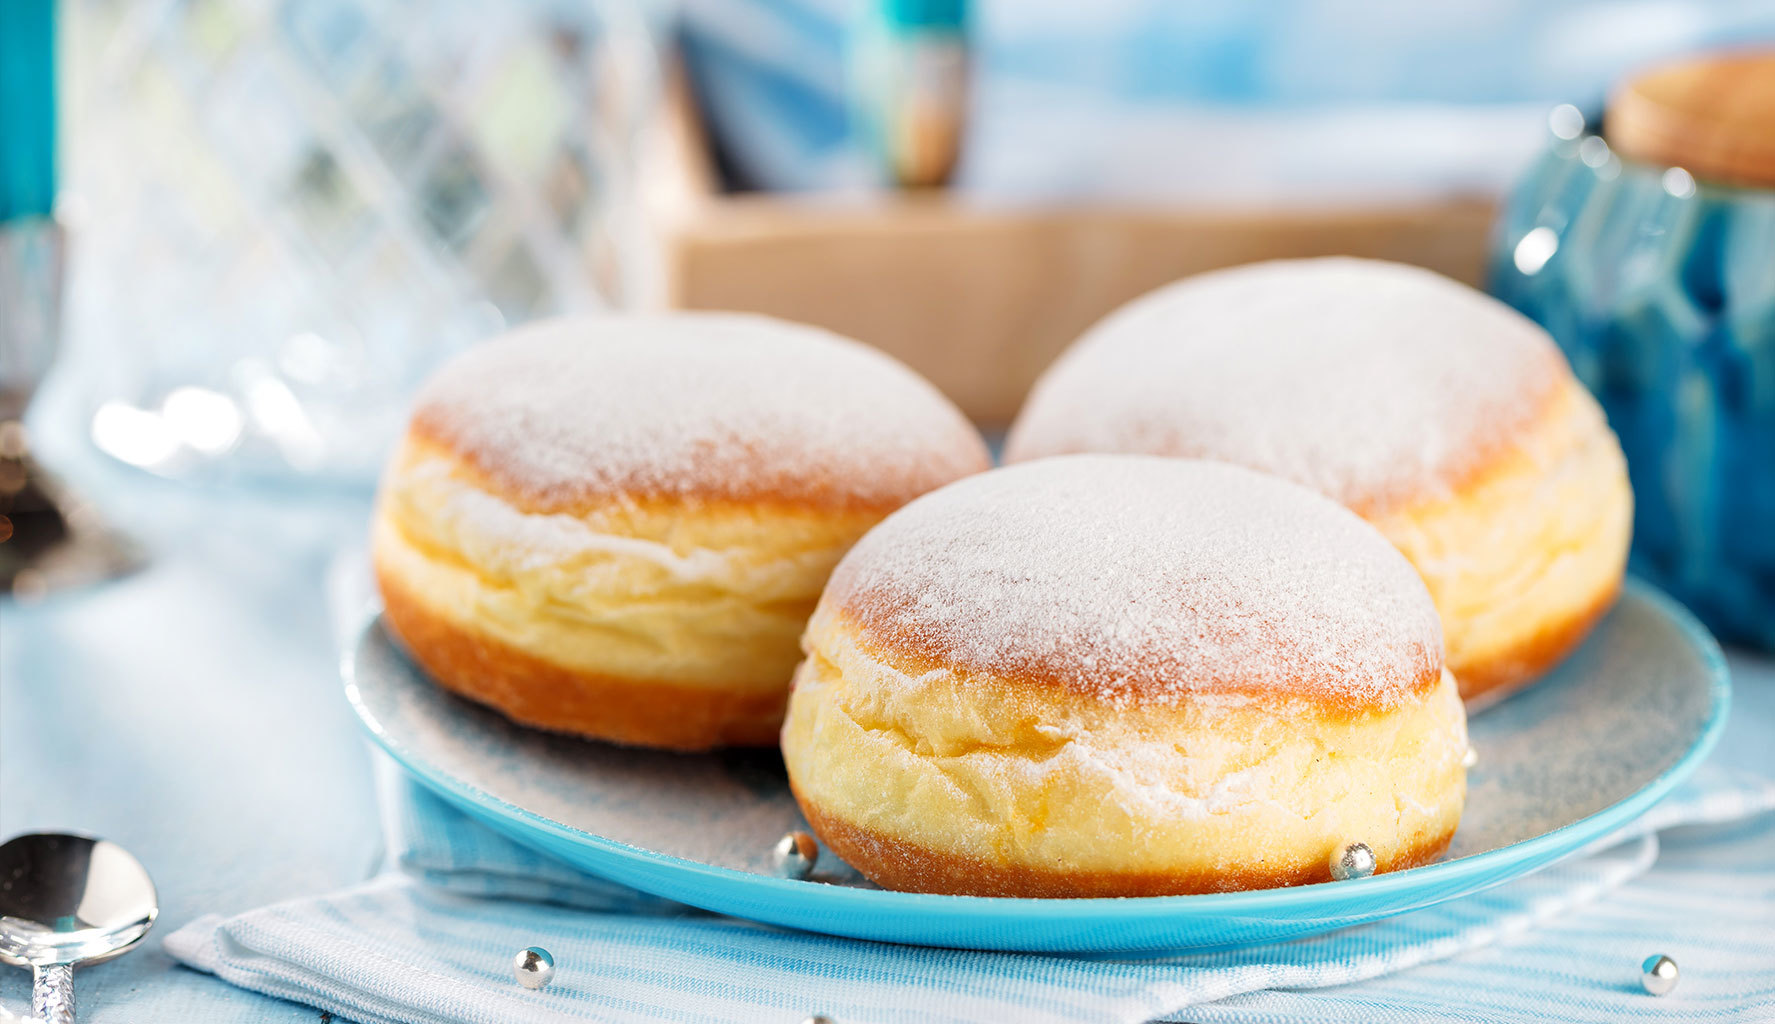 https://www.beniss.it/?product=krapfen